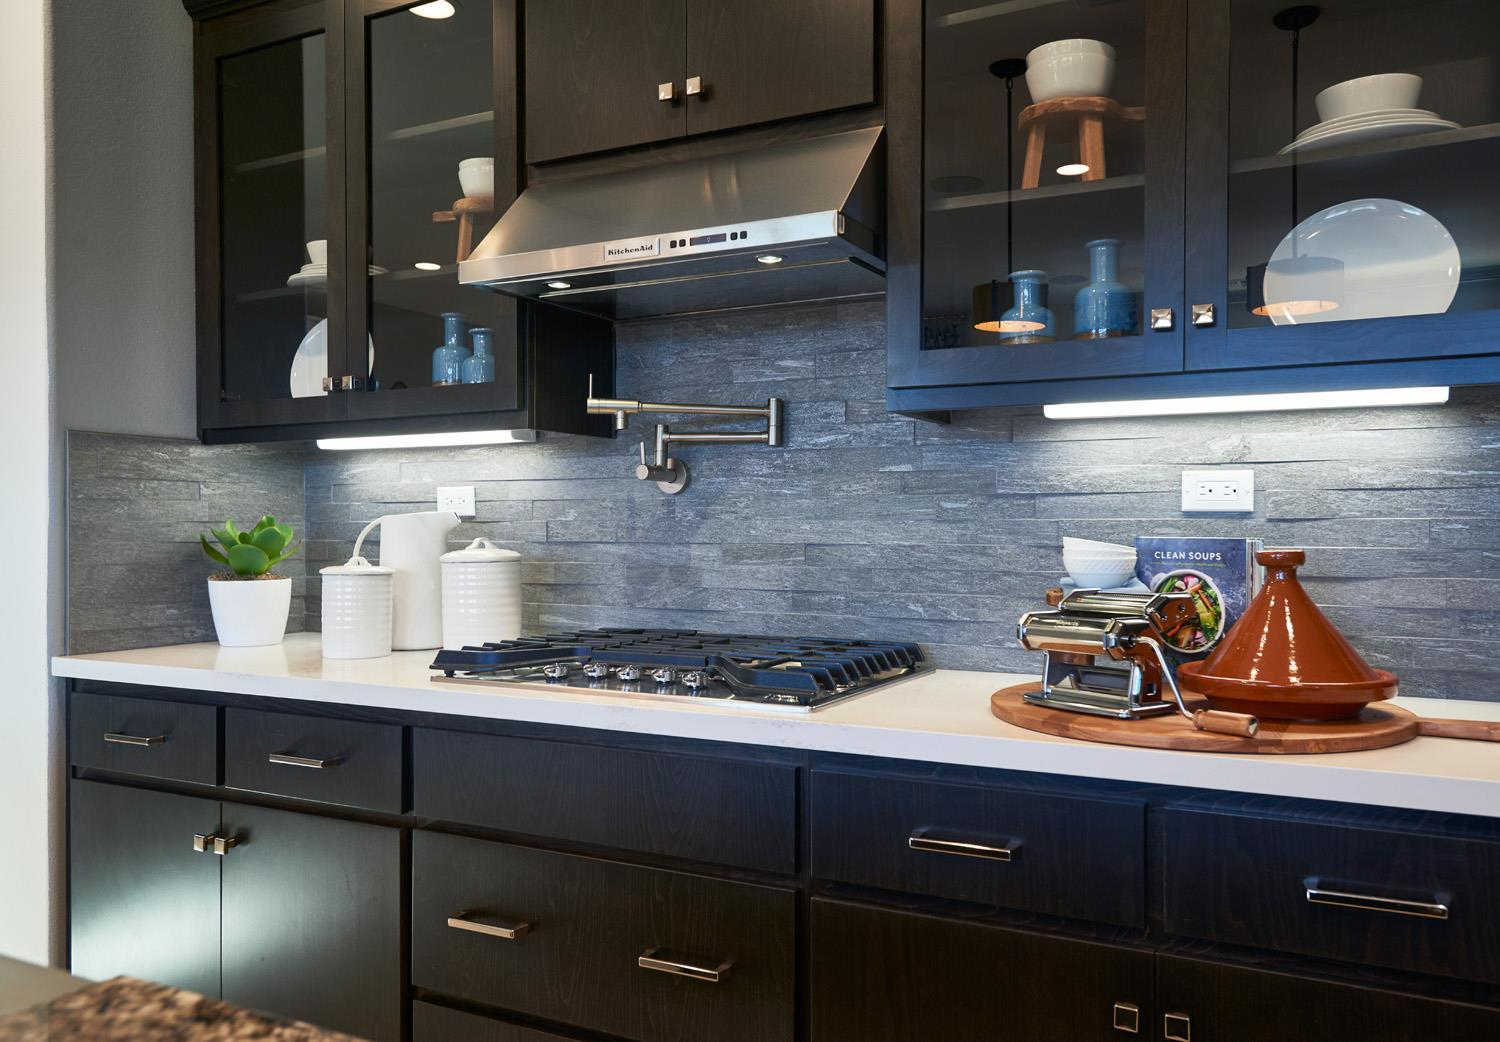 Kitchen featured in the Residence 4 By Signature Homes CA in Santa Rosa, CA